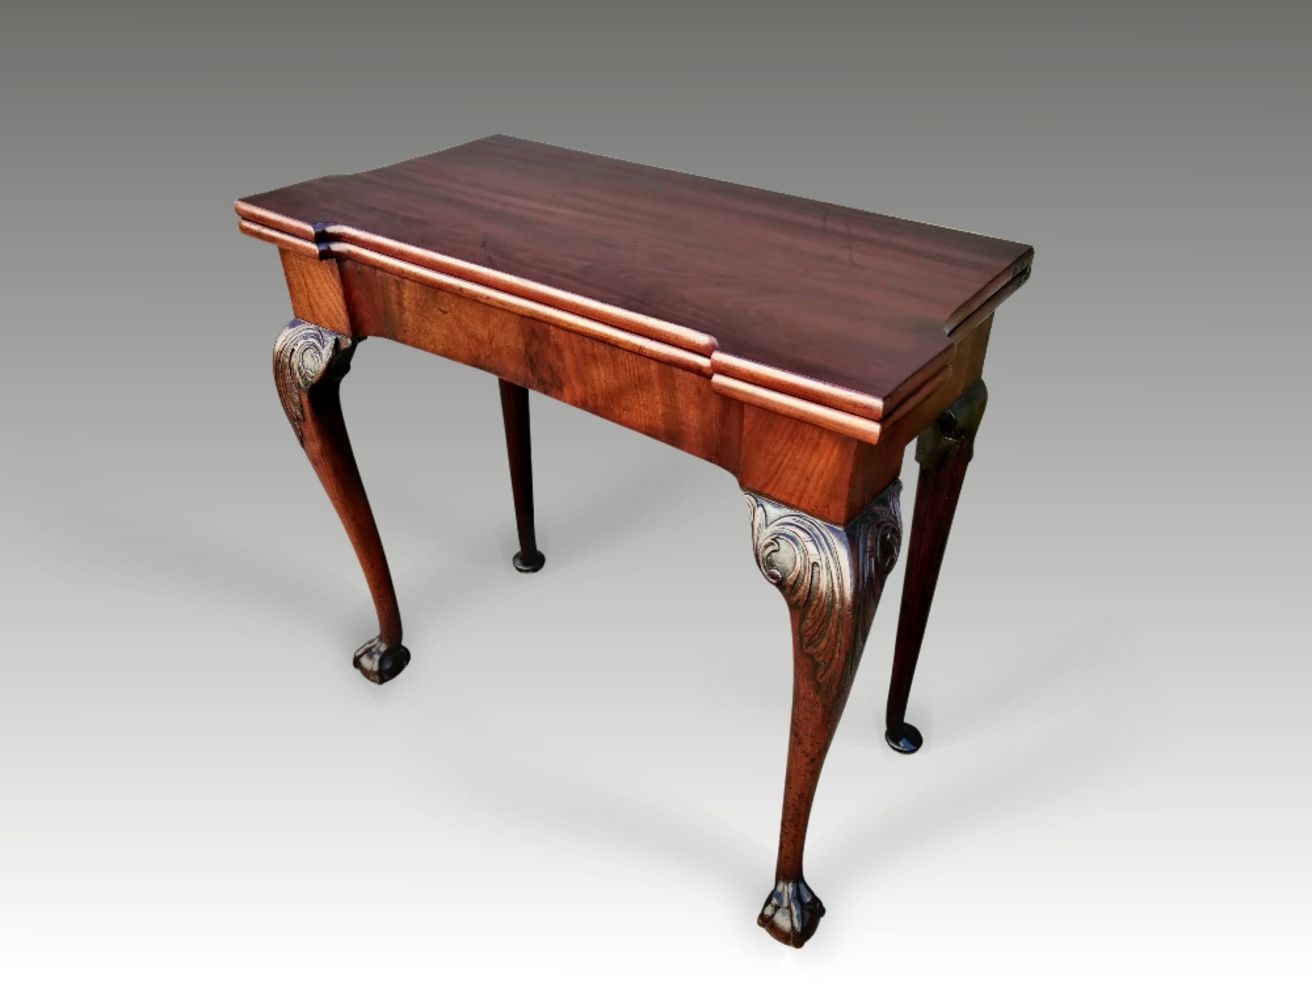 MAY LIVE Antiques Auction of Fine Furniture, Art, Silver, Historical Memorabilia, Rugs, Jewellery & Collectables.